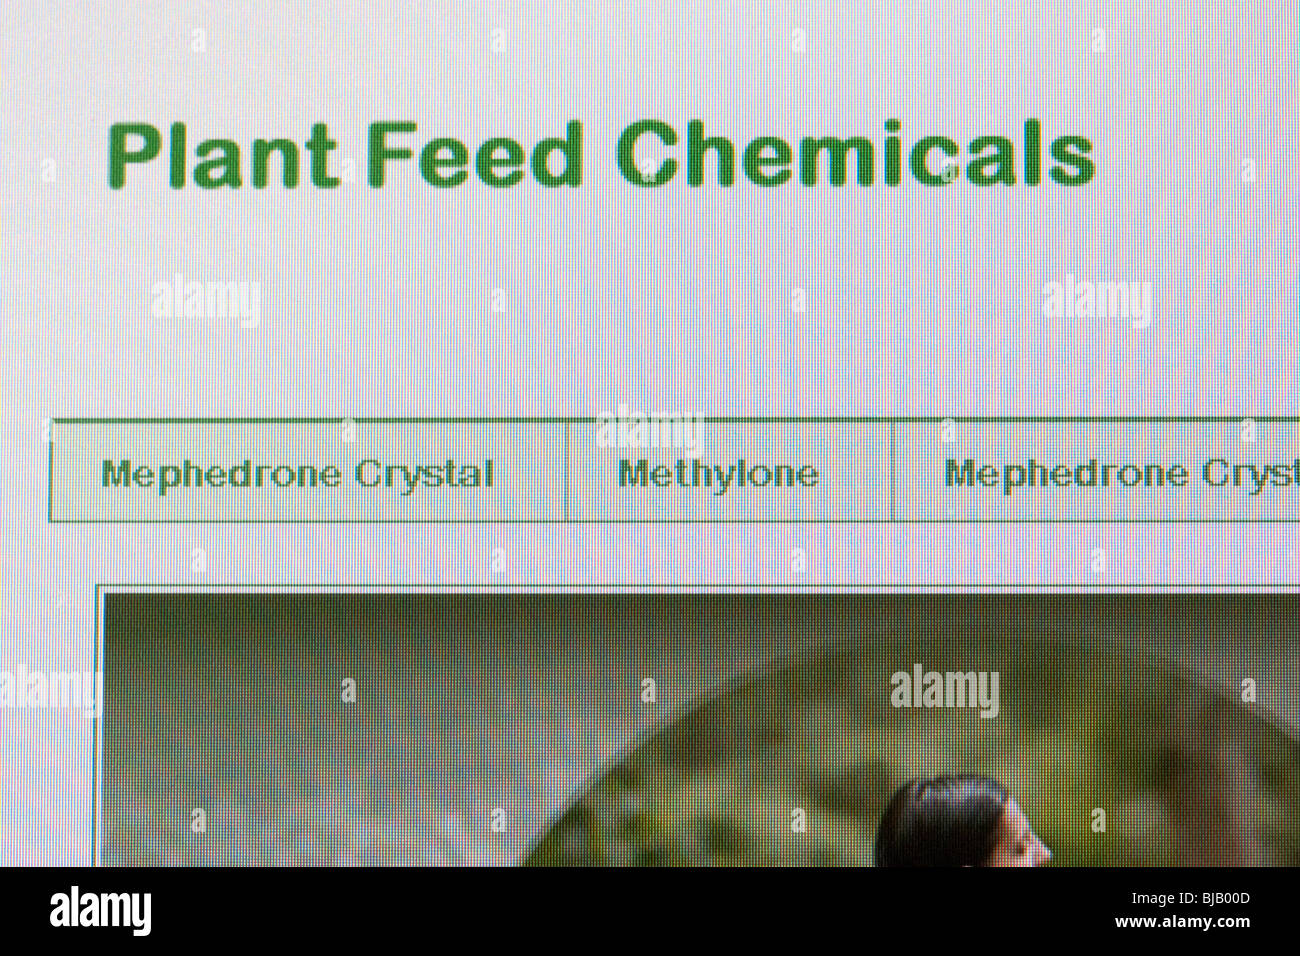 website selling the drug mephedrone legally in the uk as plant feed chemicals - Stock Image